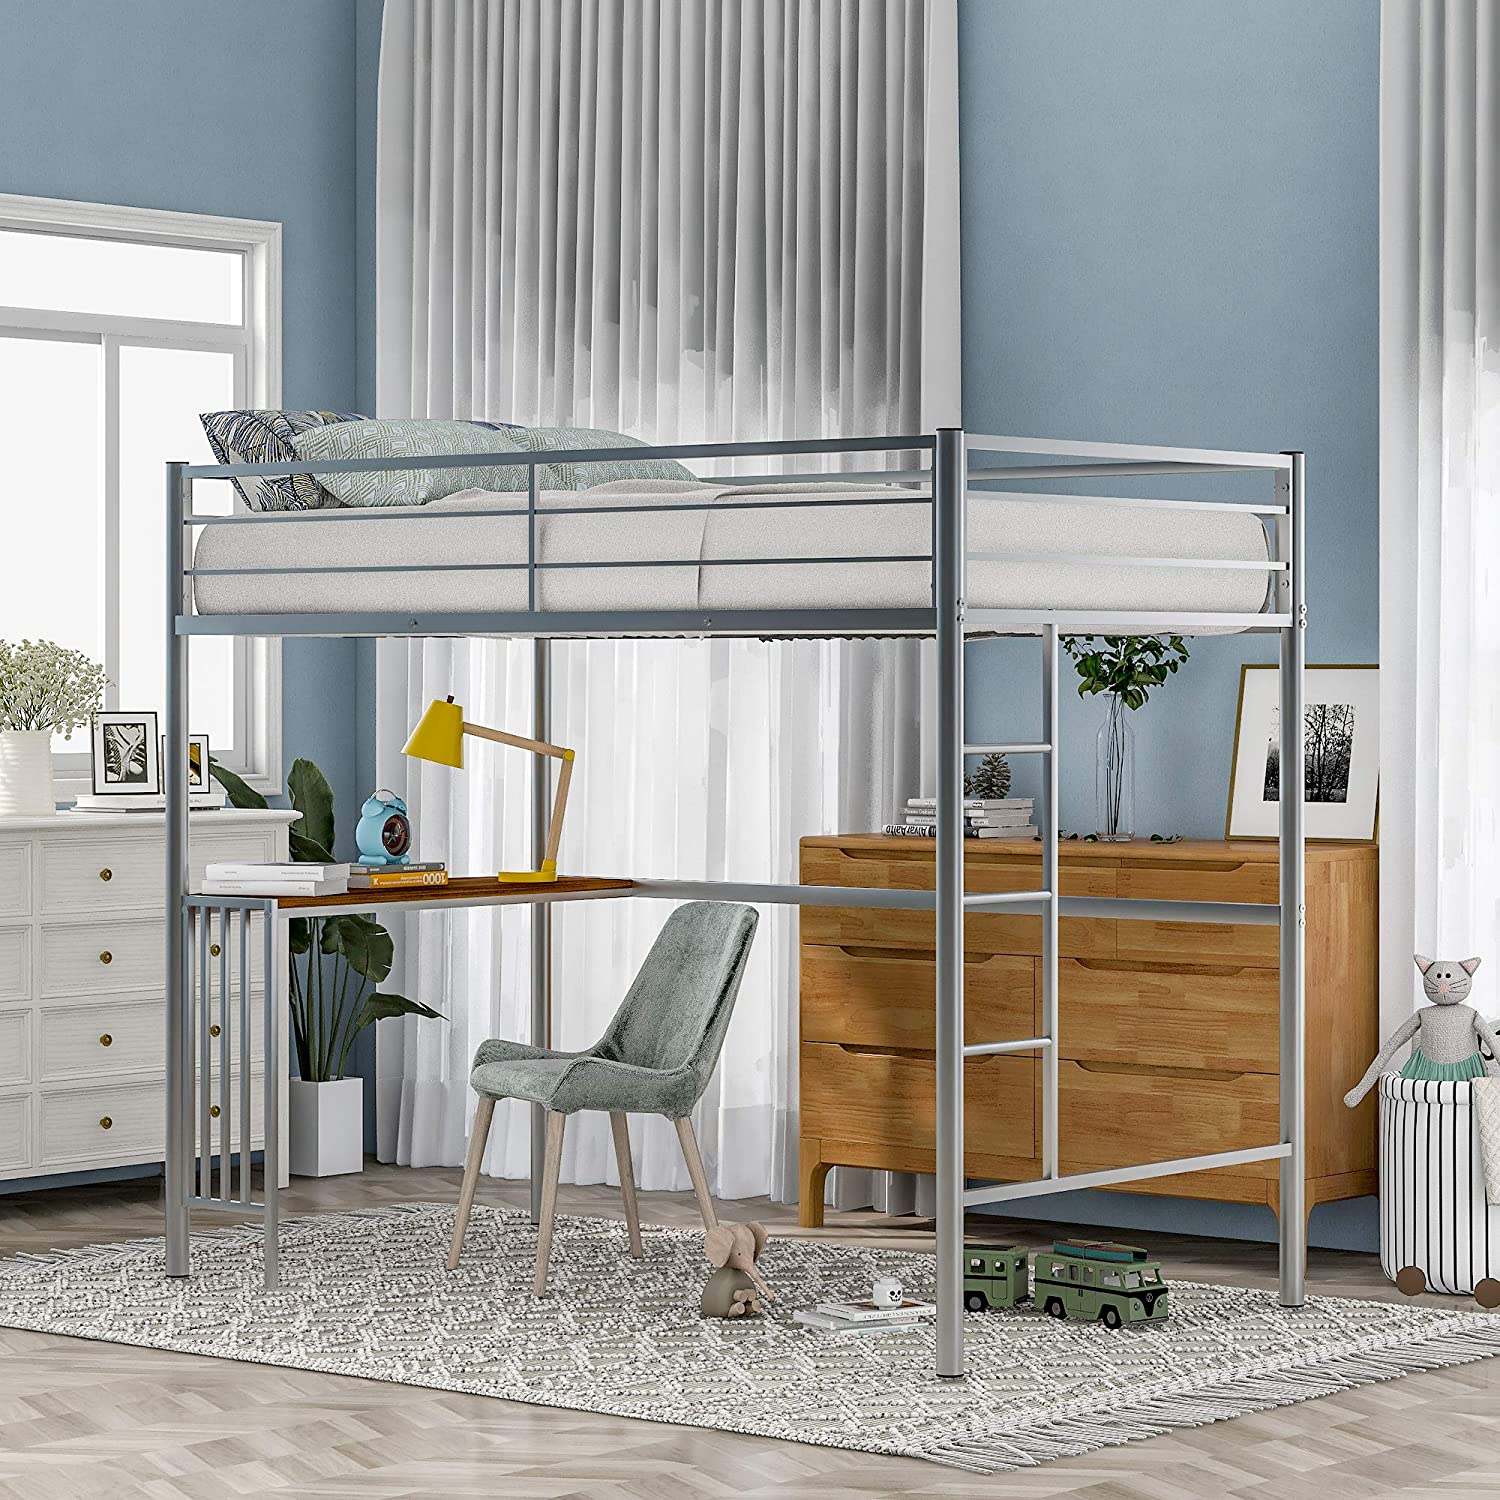 Twin Tulsa Mall Metal Bunk Bed with and Ladder Size Desk Guardrails El Paso Mall